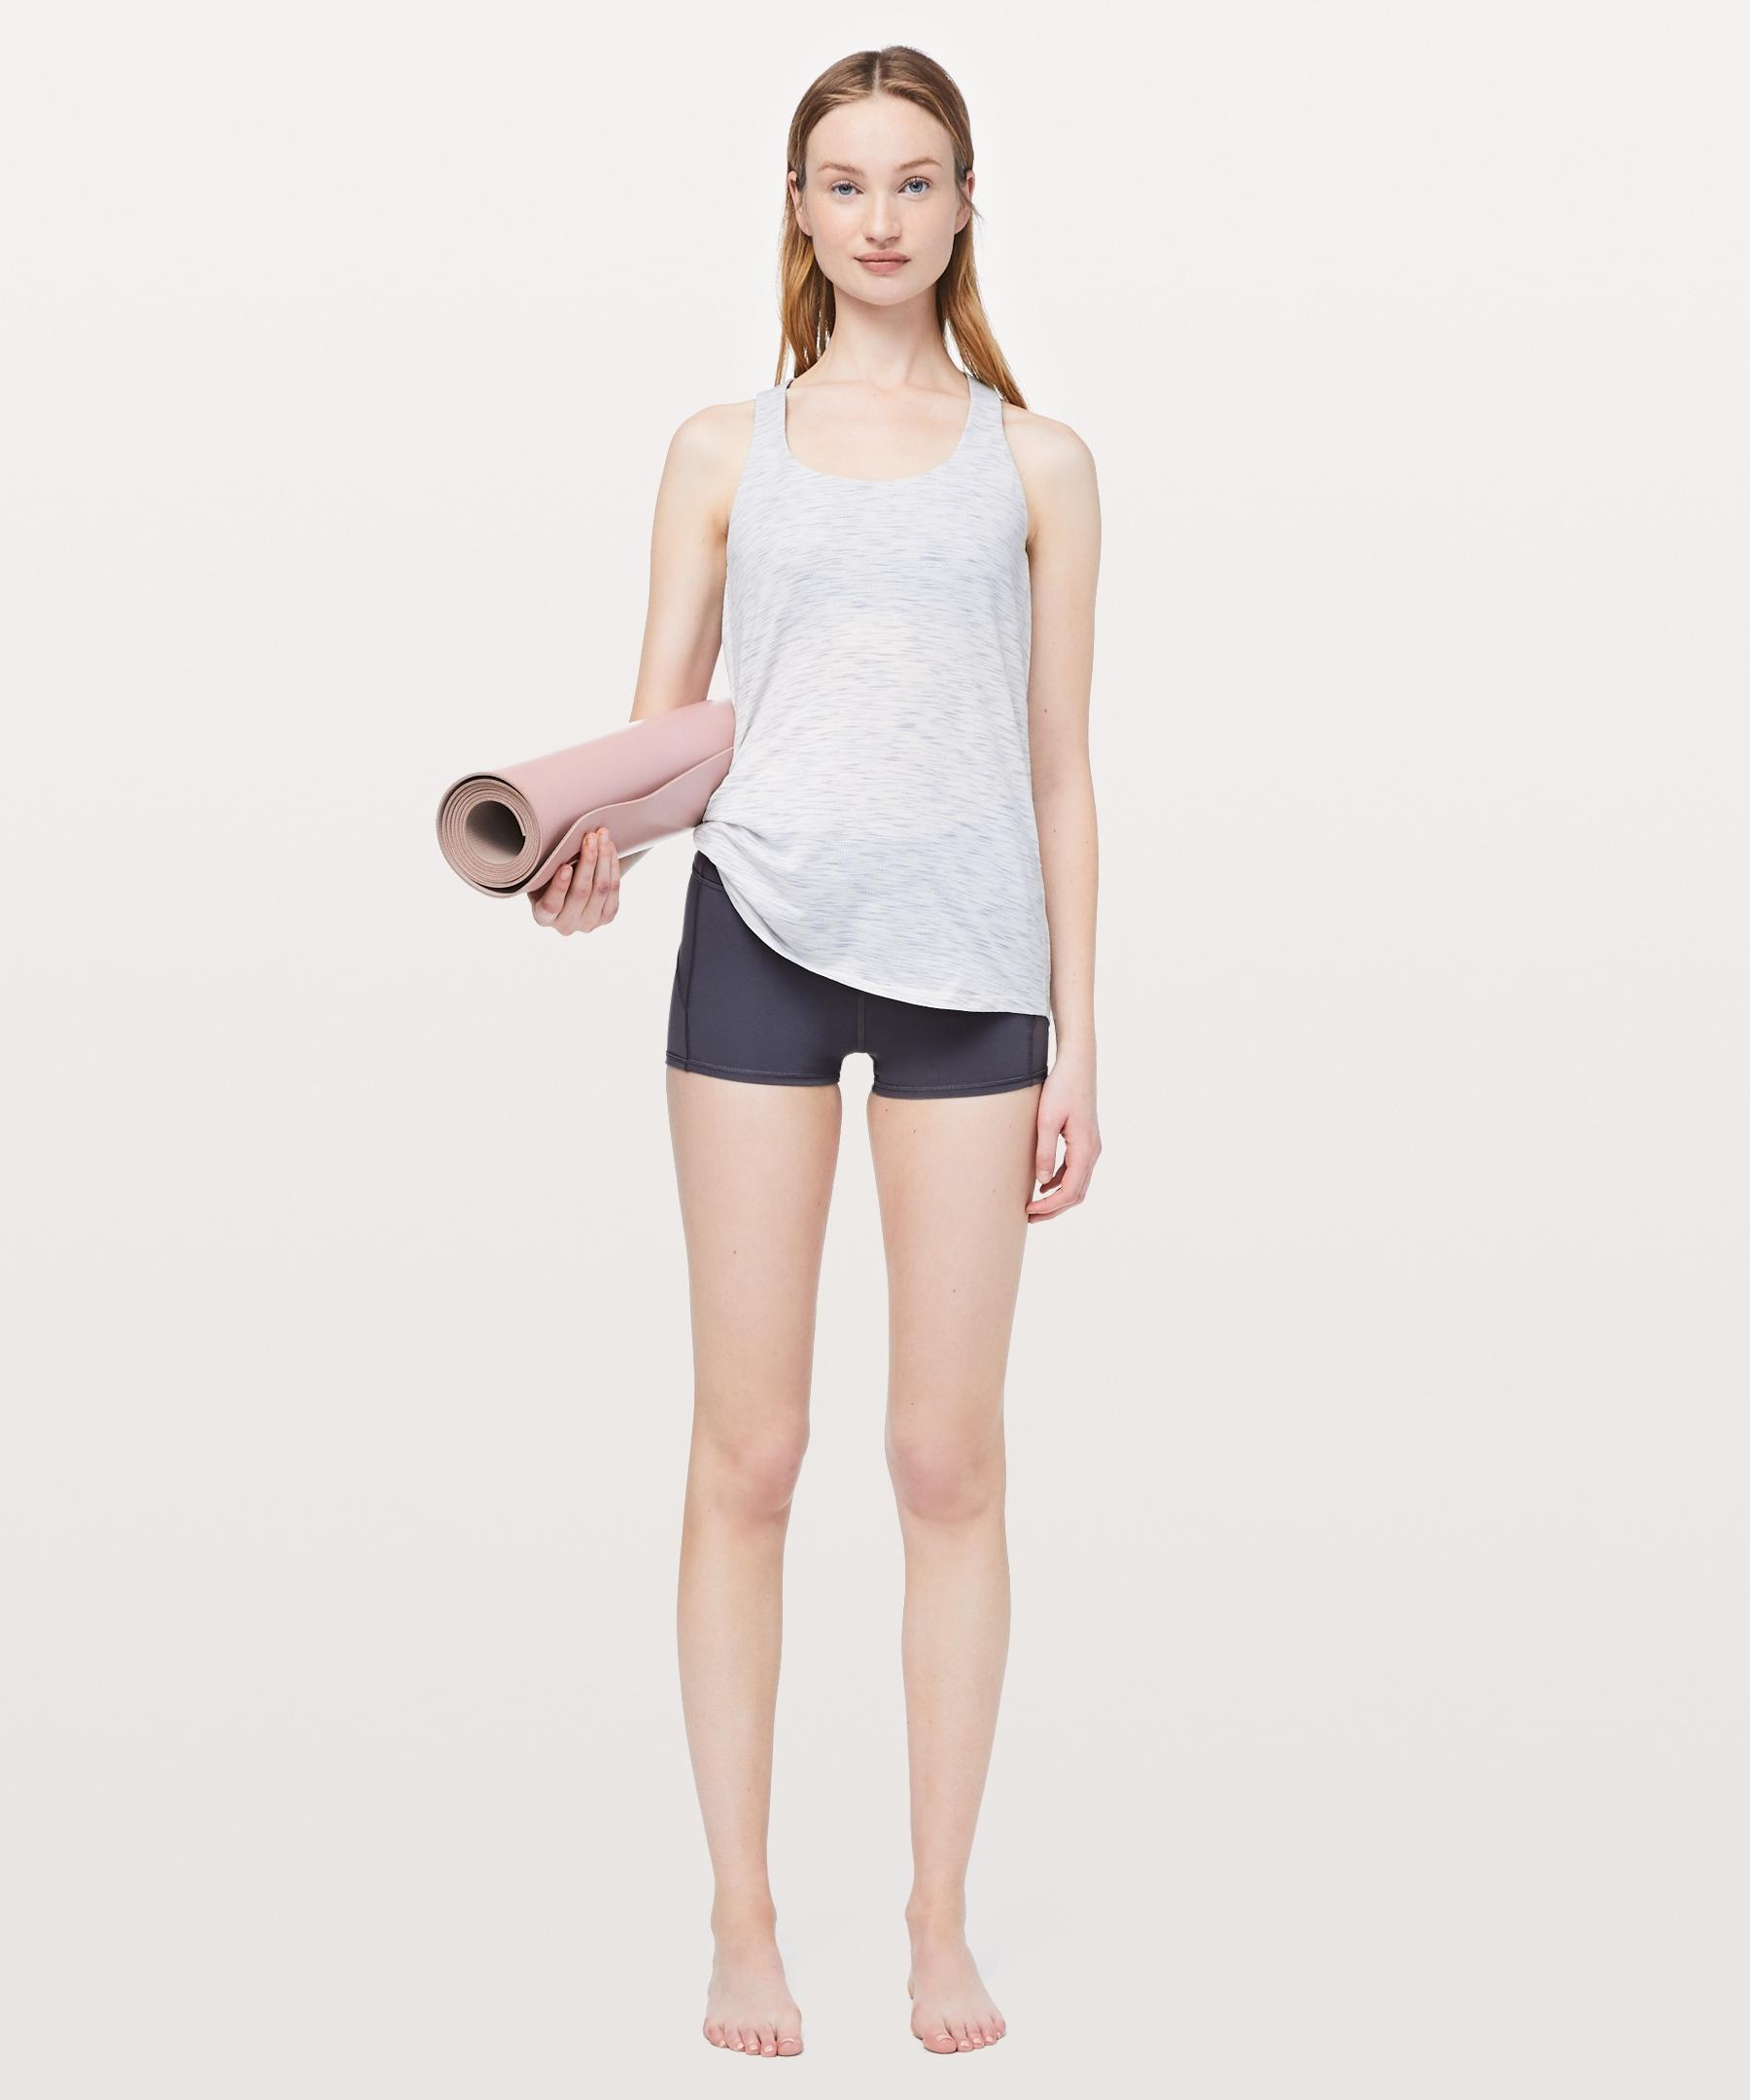 74c9dc23d44 lululemon athletica Slay The Studio 2-in-1 Tank  medium Support B c Cup in  White - Save 43% - Lyst